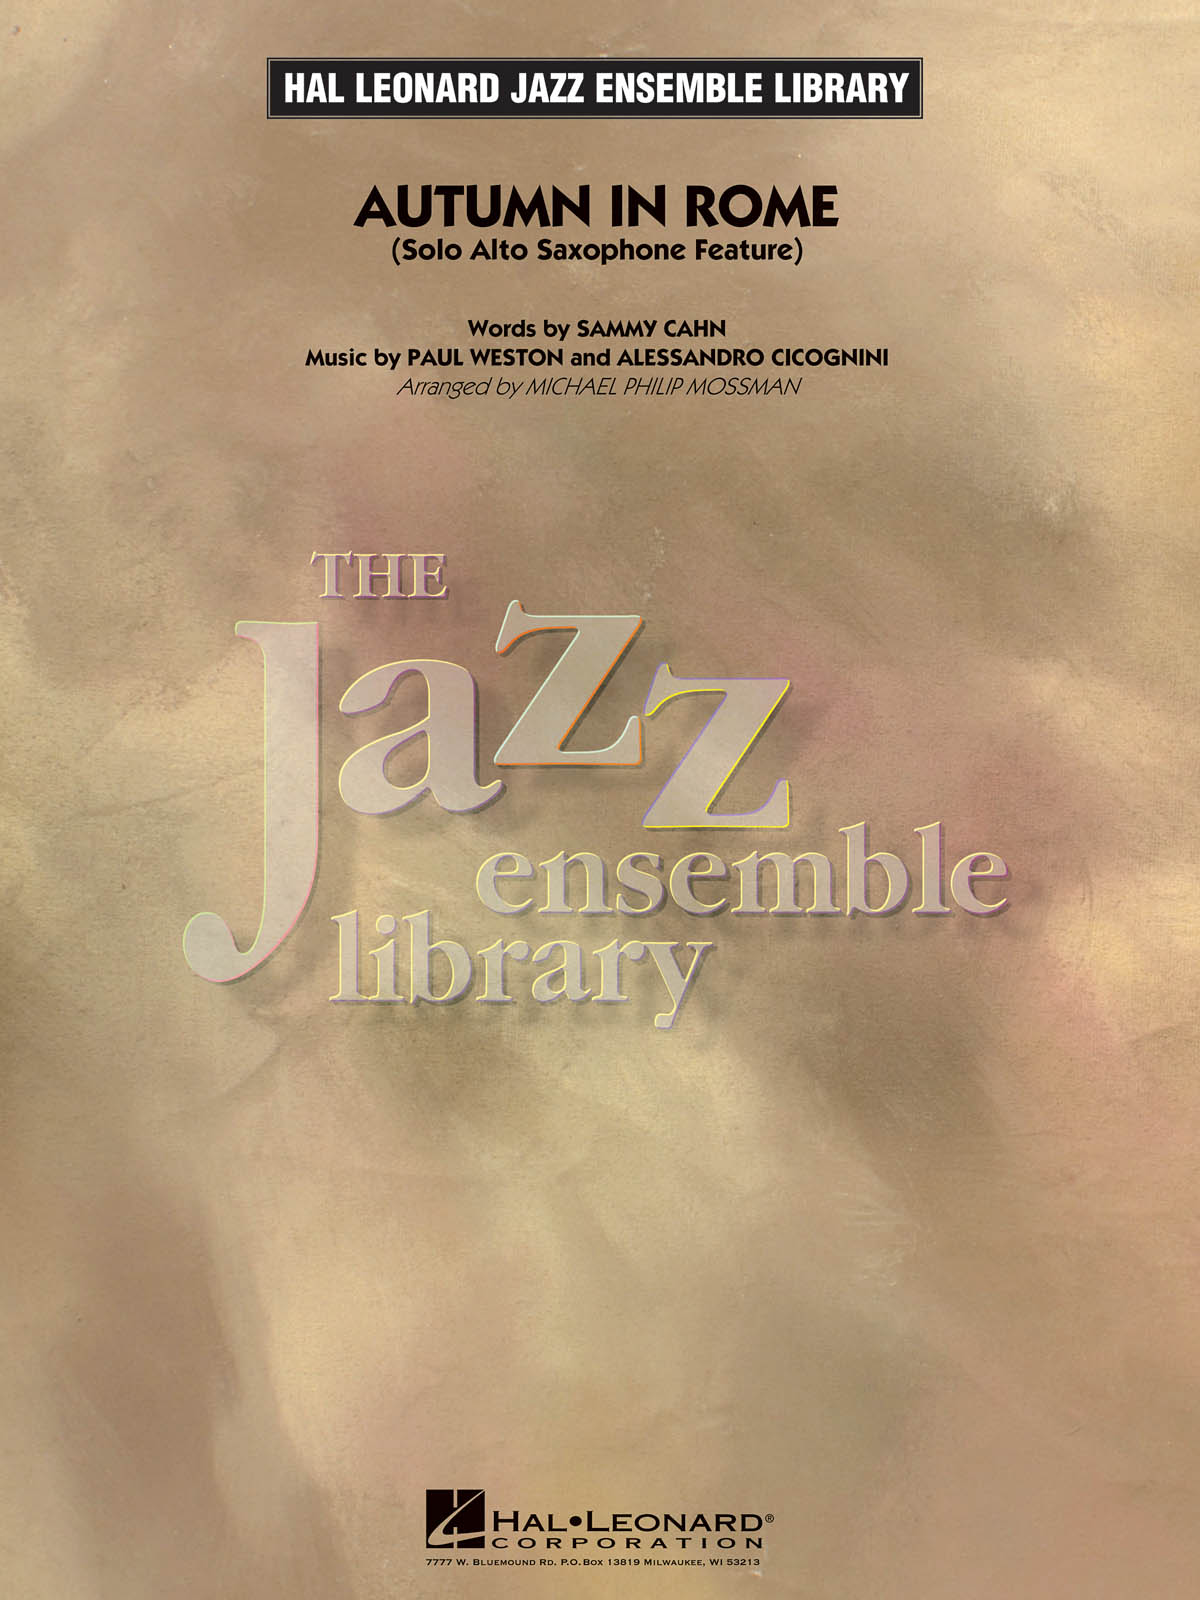 Autumn in Rome (Solo Alto Sax Feature): The Jazz Ensemble Library